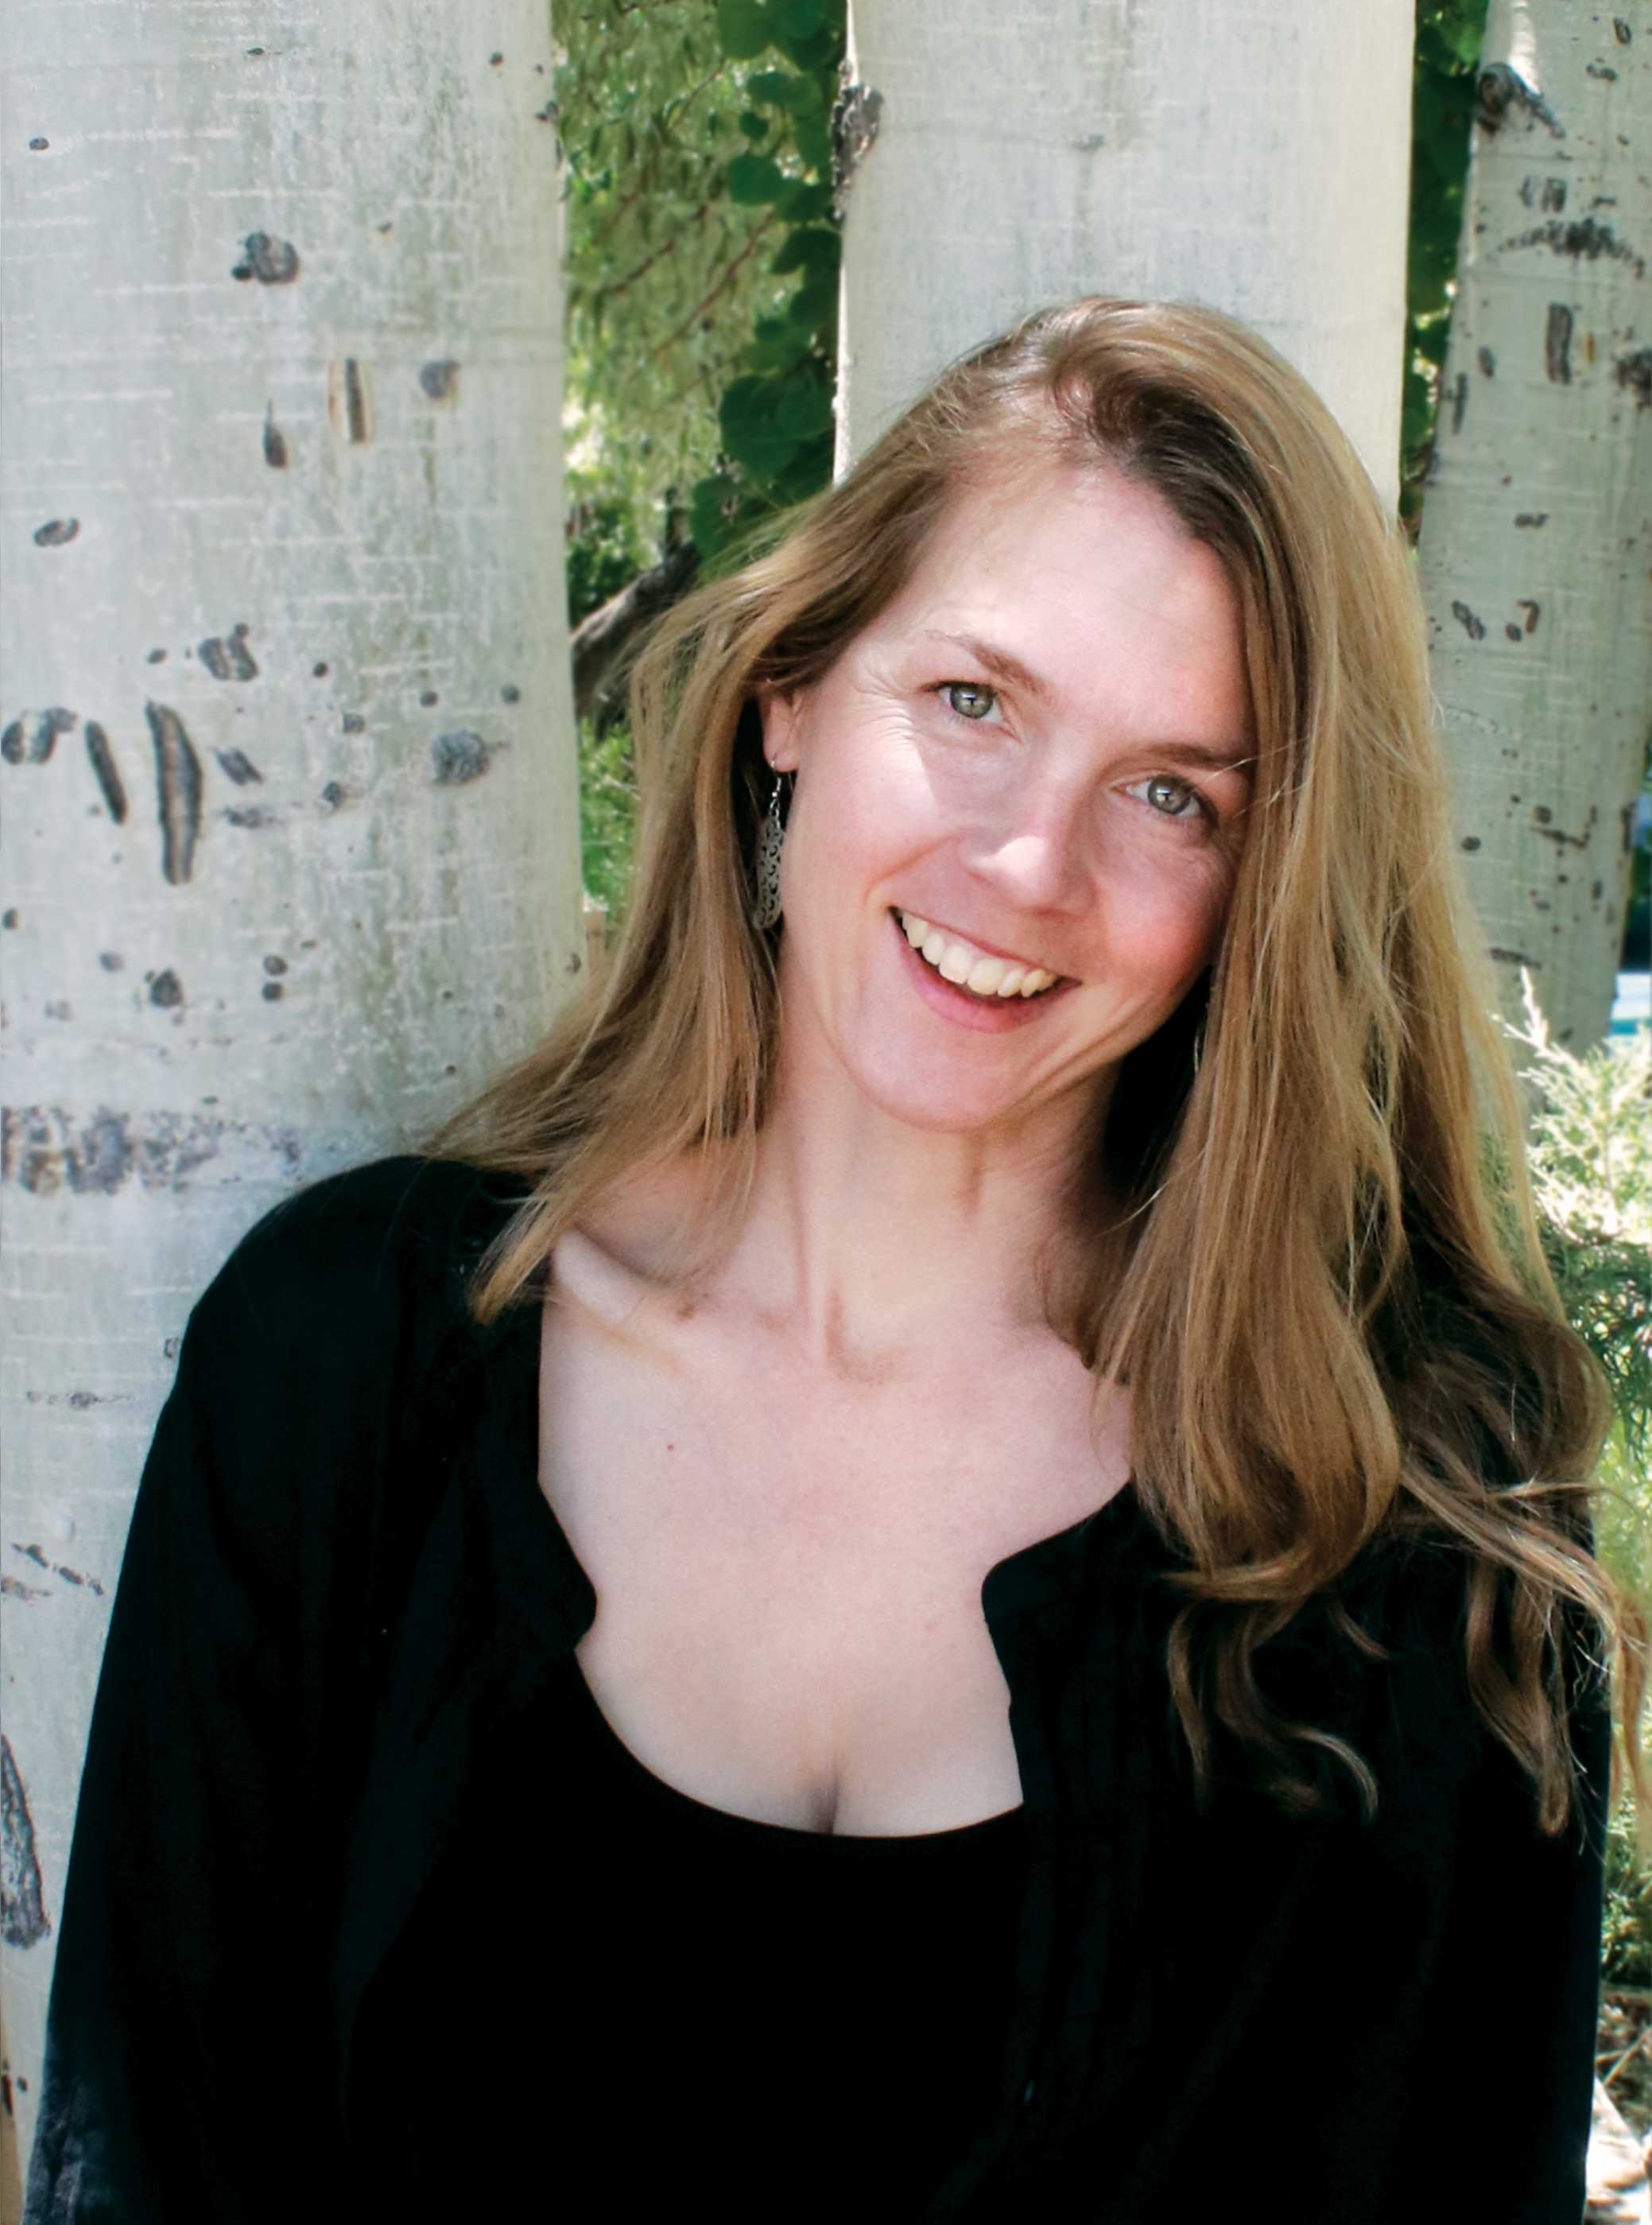 Taos Whole Health Integrative Care - Tracy Miller, LMT